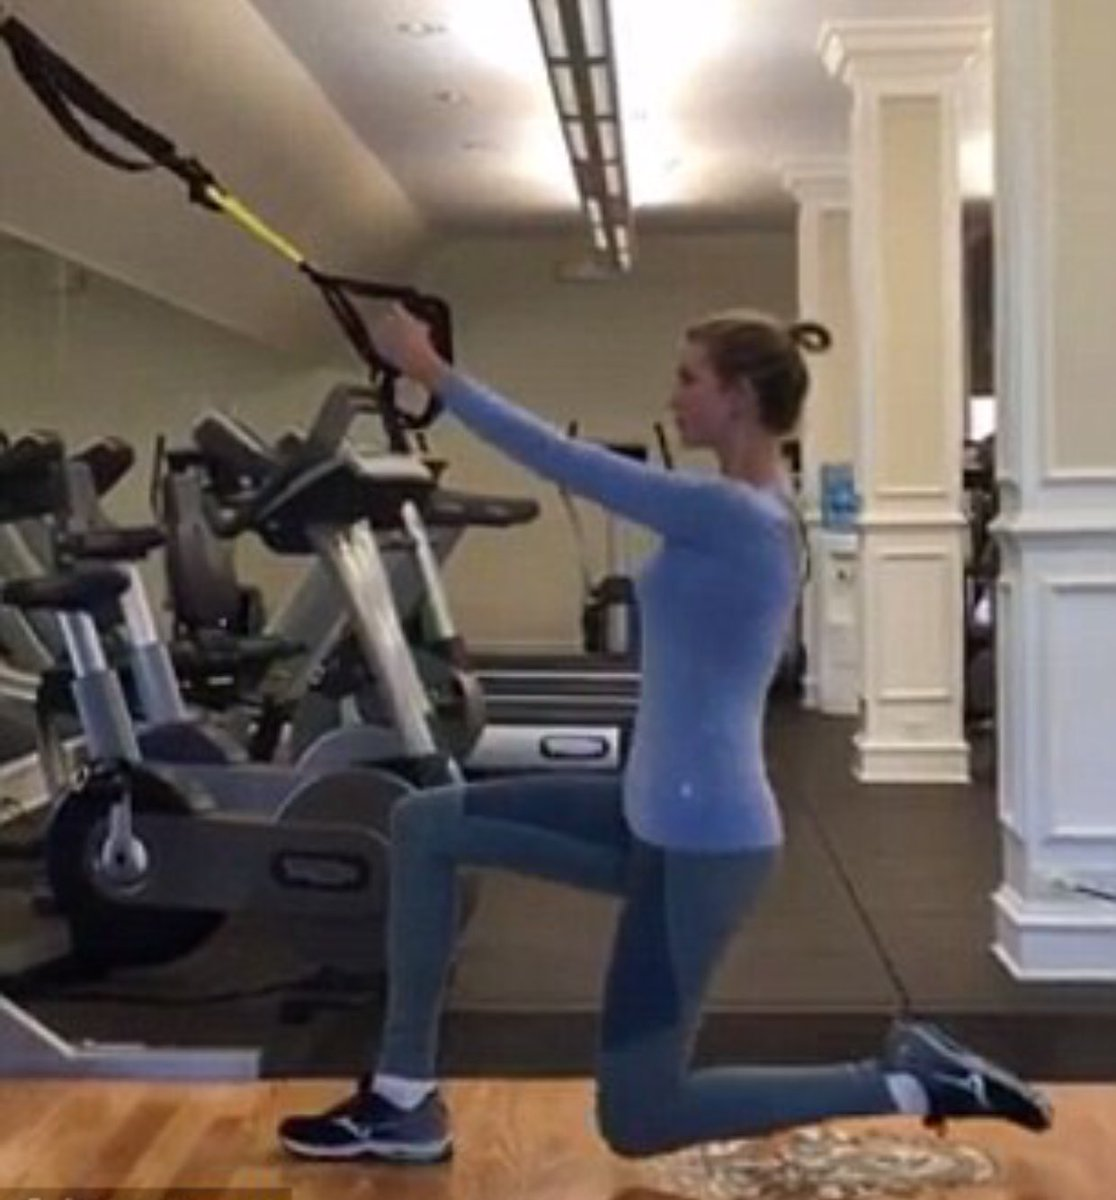 Ivanka working hard in the gym.